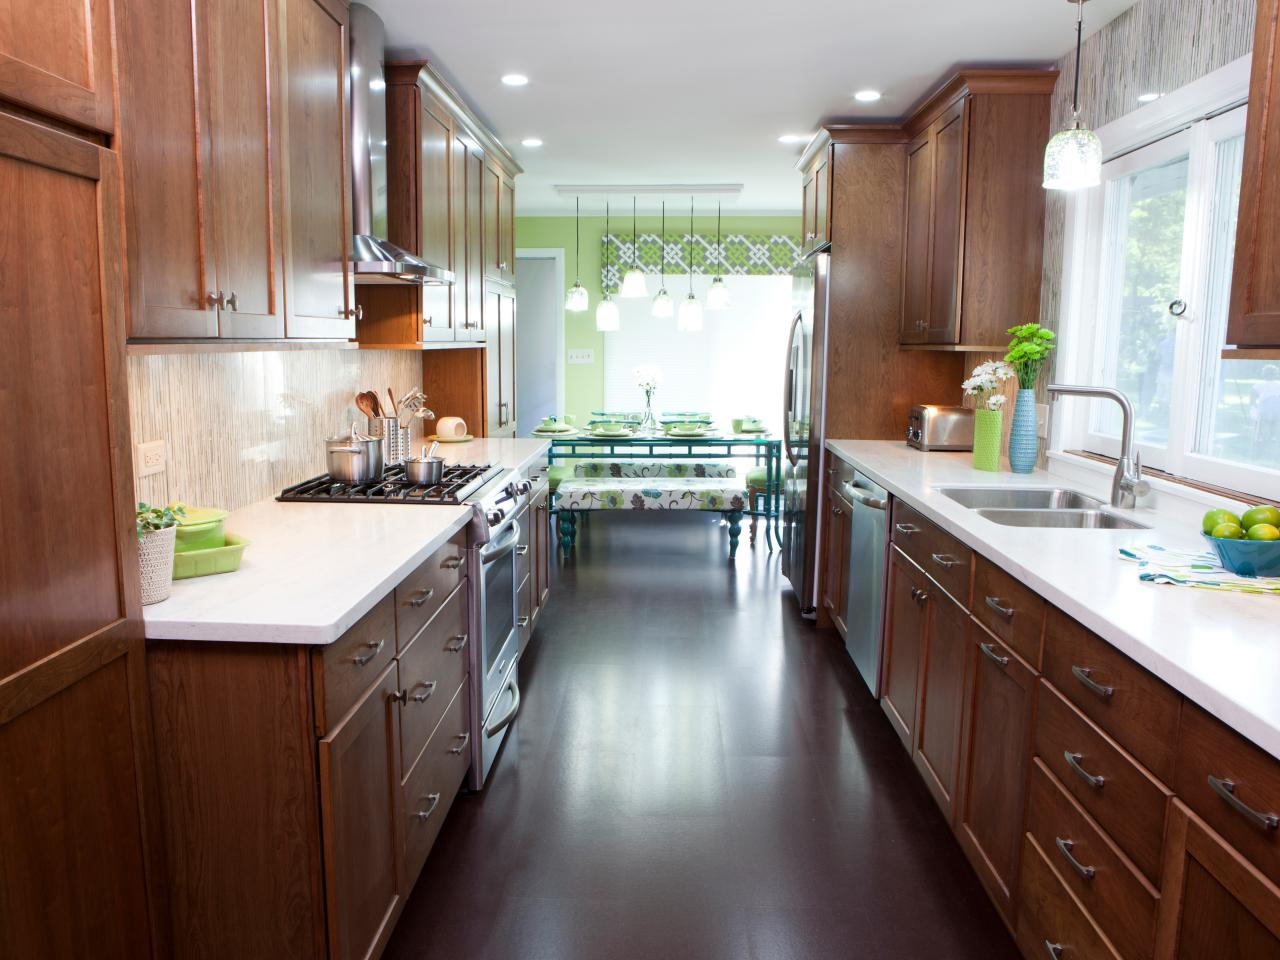 Galley kitchen designs hgtv for Gallery kitchens kitchen design